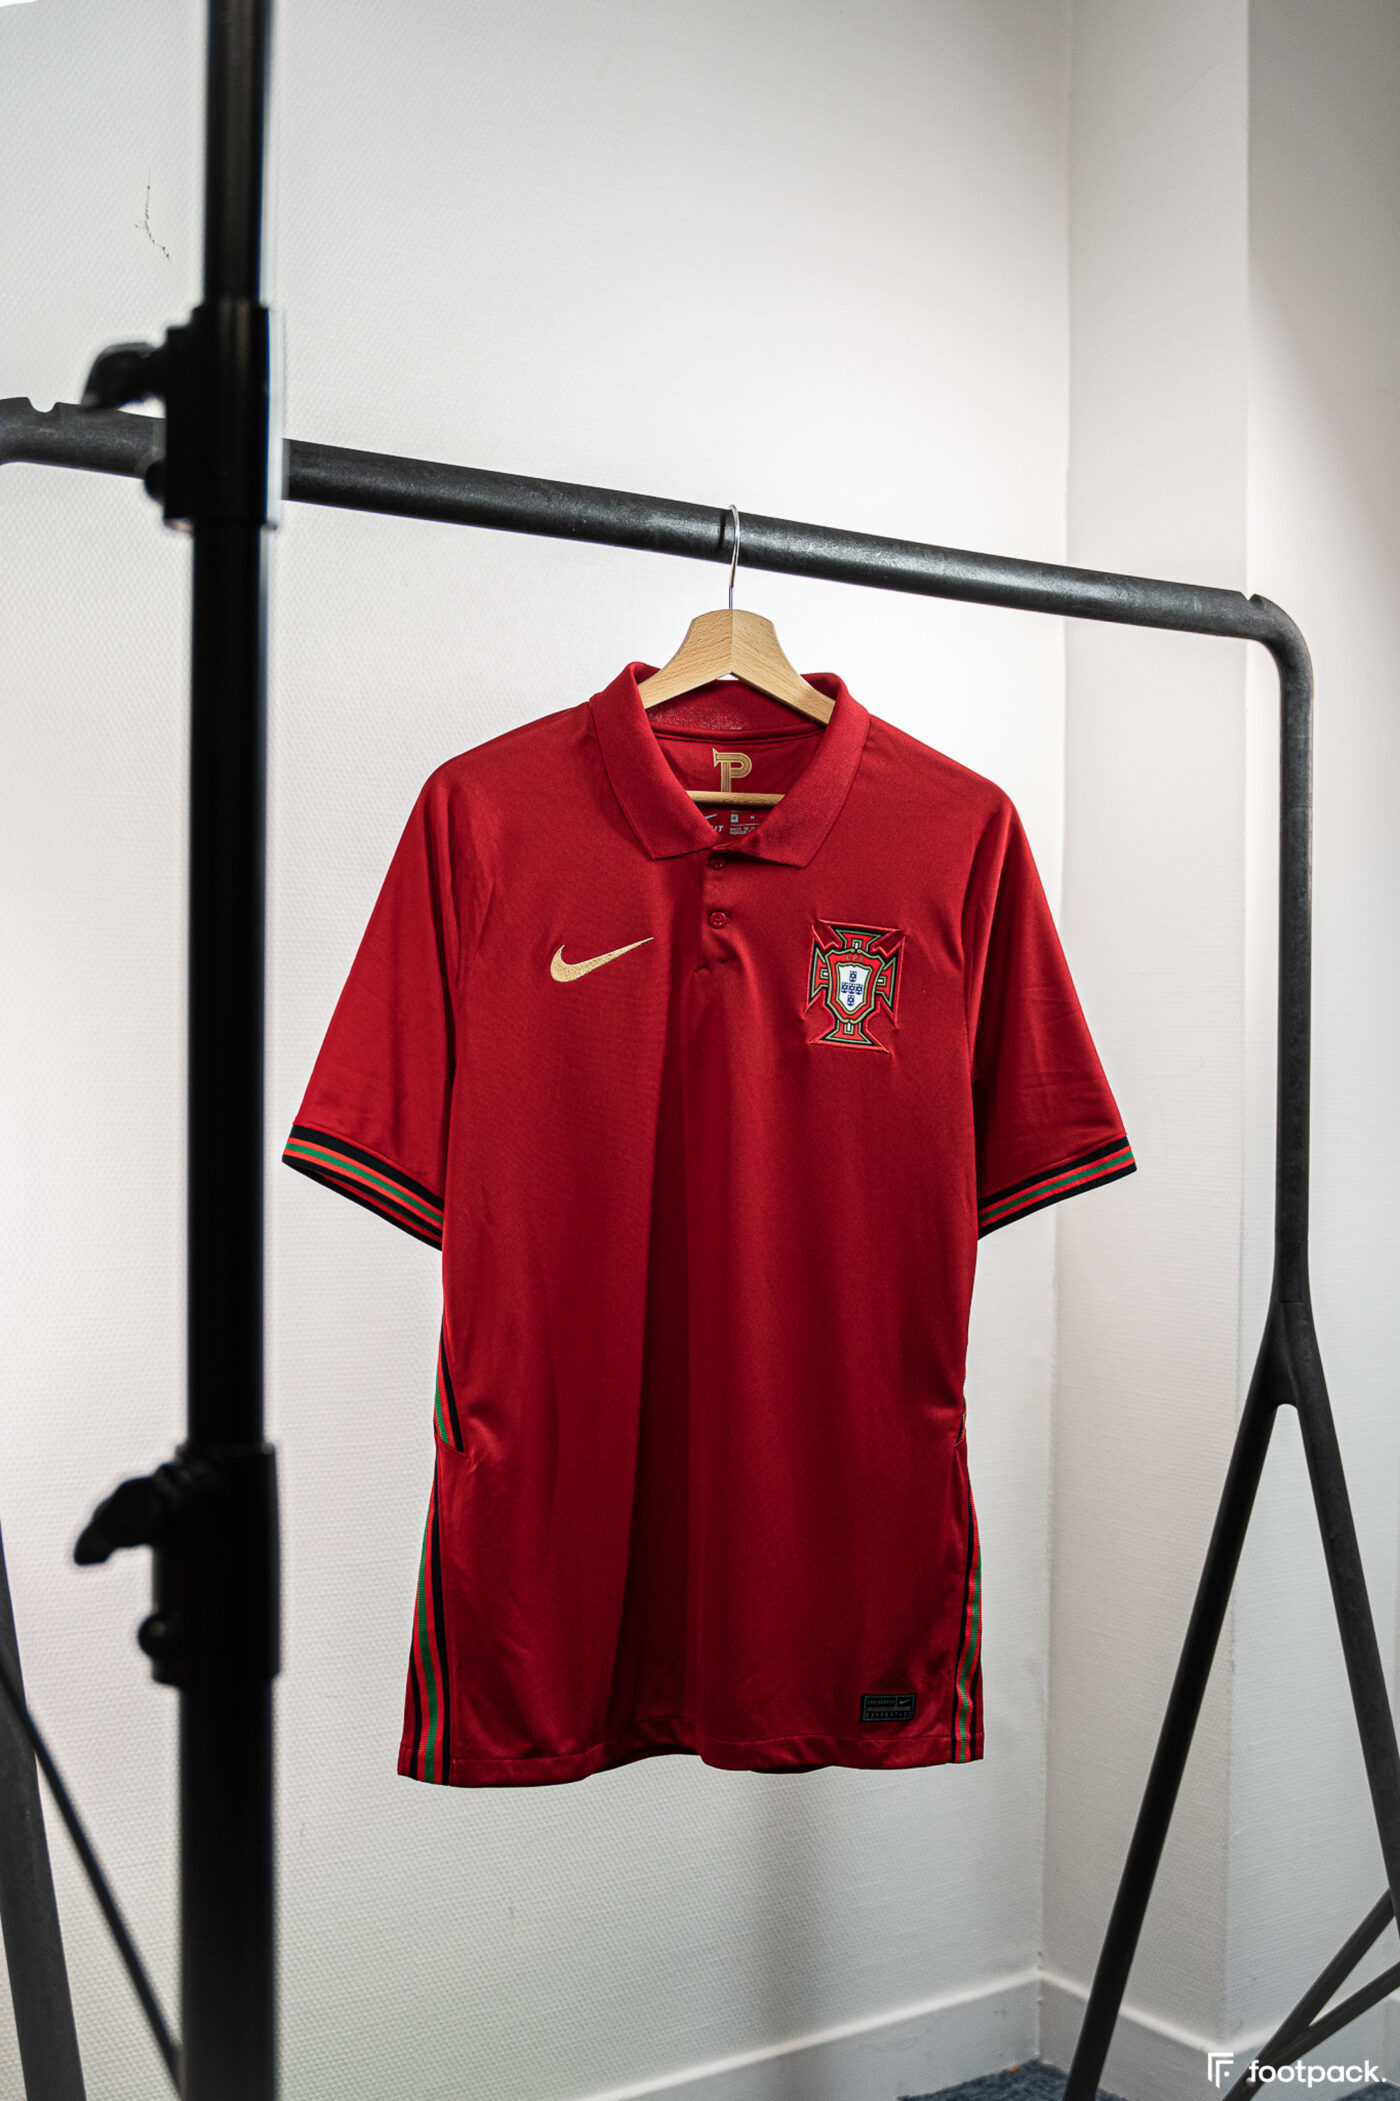 Maillot Nike Euro 2020 footpack